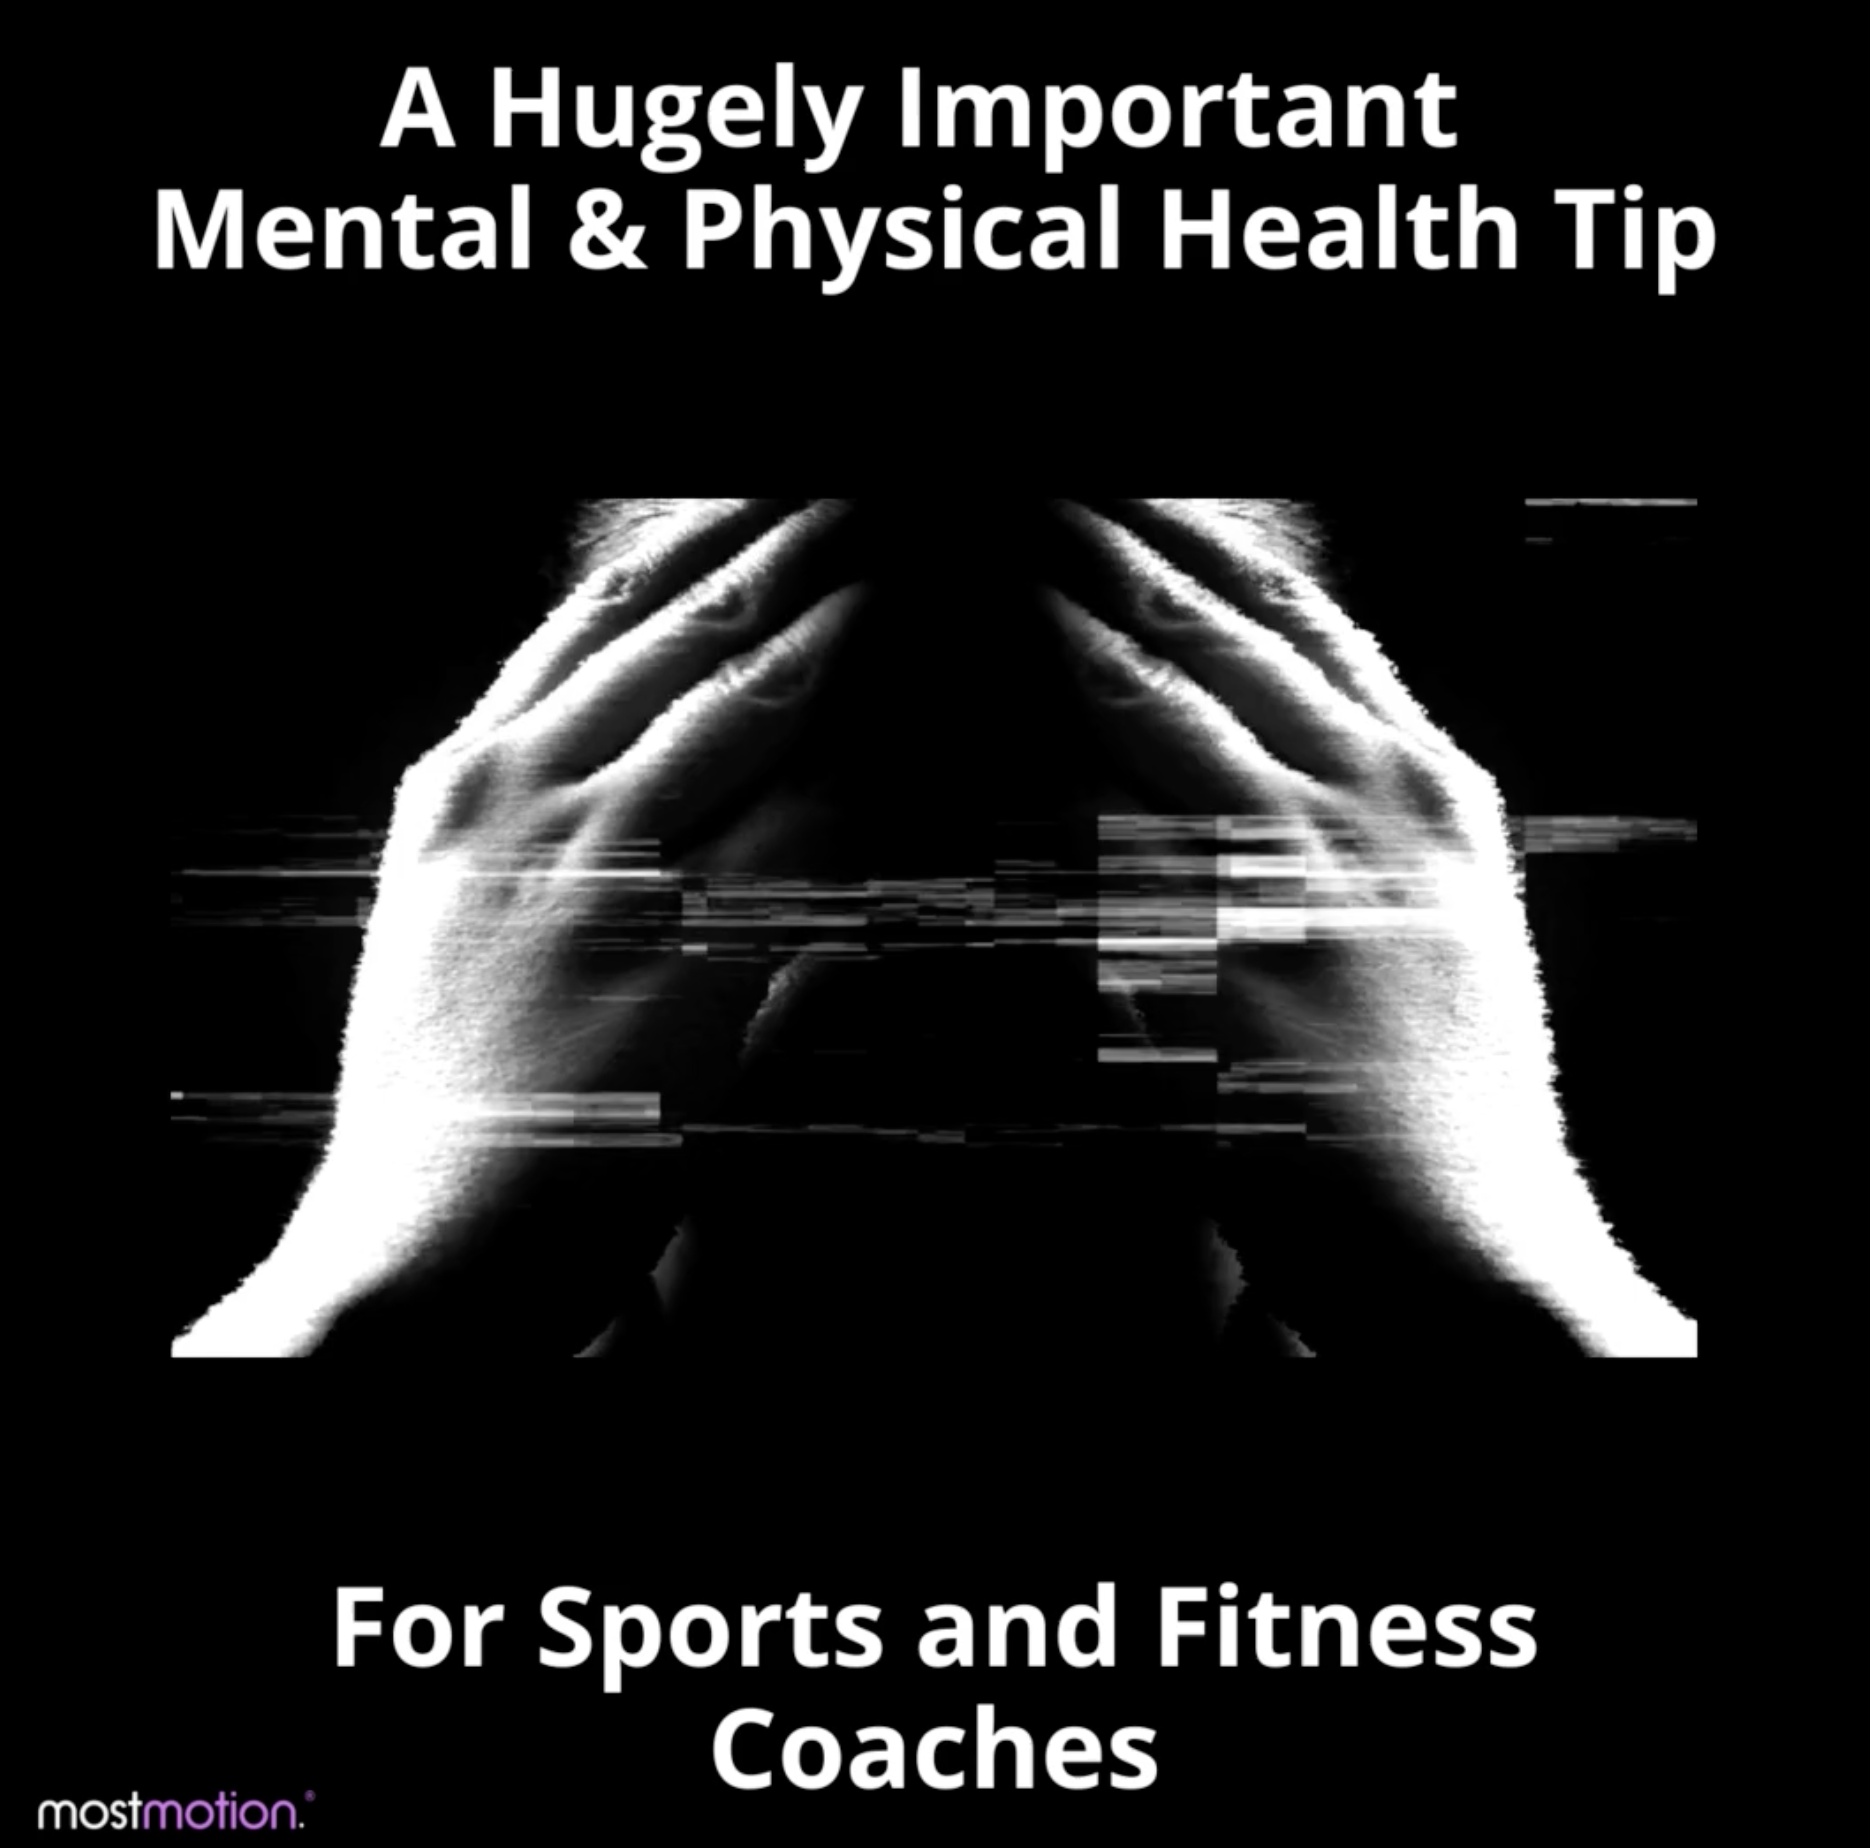 A Hugely Important Mental & Physical Health Tip For Every Sports and Fitness Coach